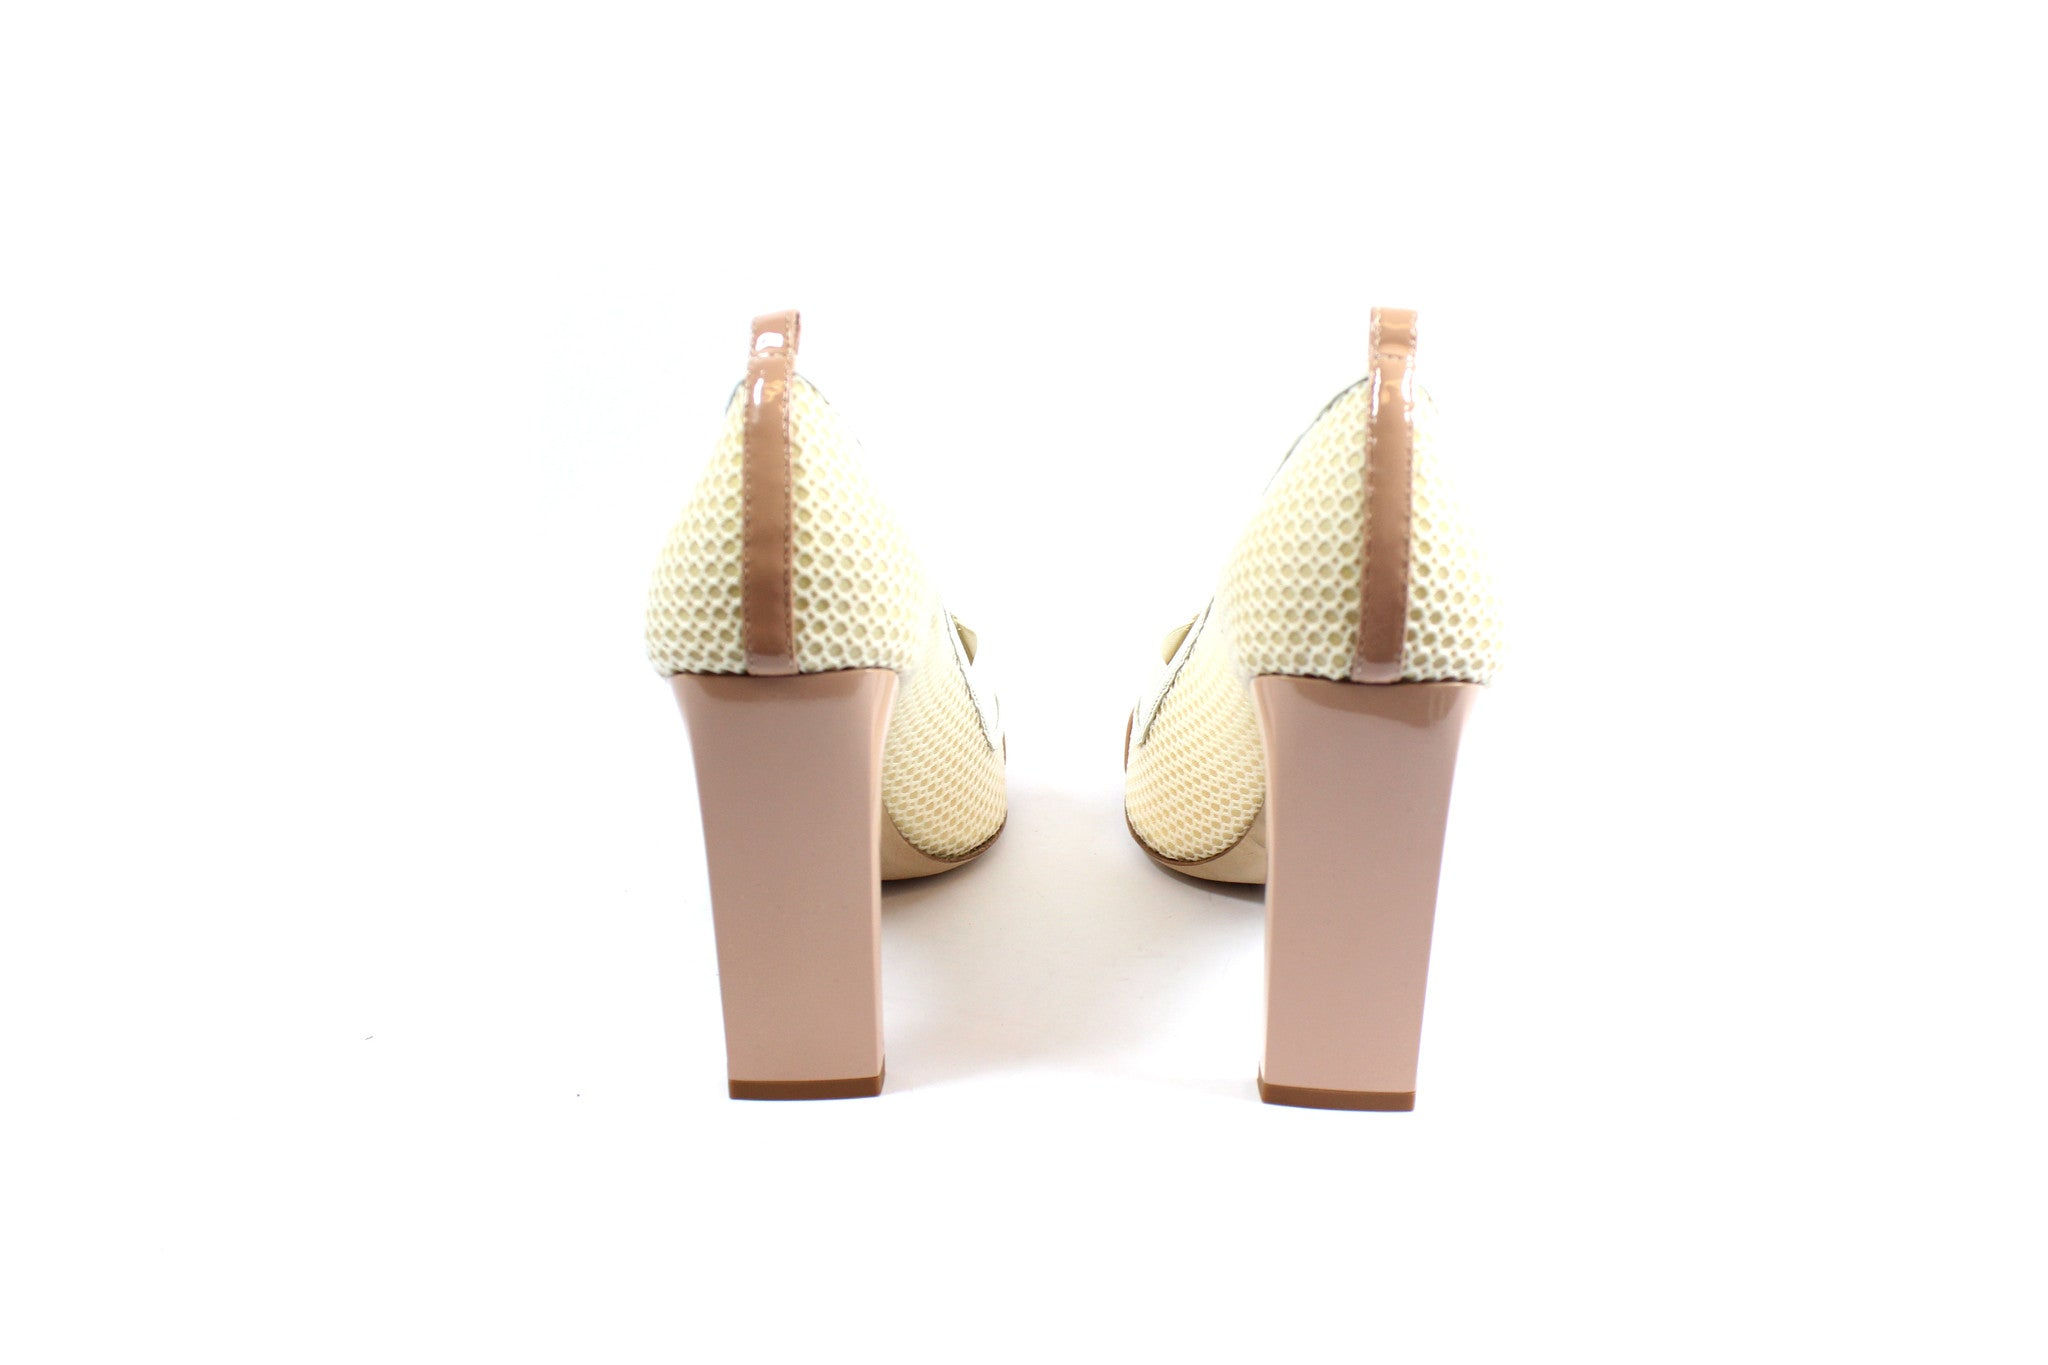 Reed Krakoff Mesh Atlas Nude and White Pumps (Size 38.5) - Encore Consignment - 5